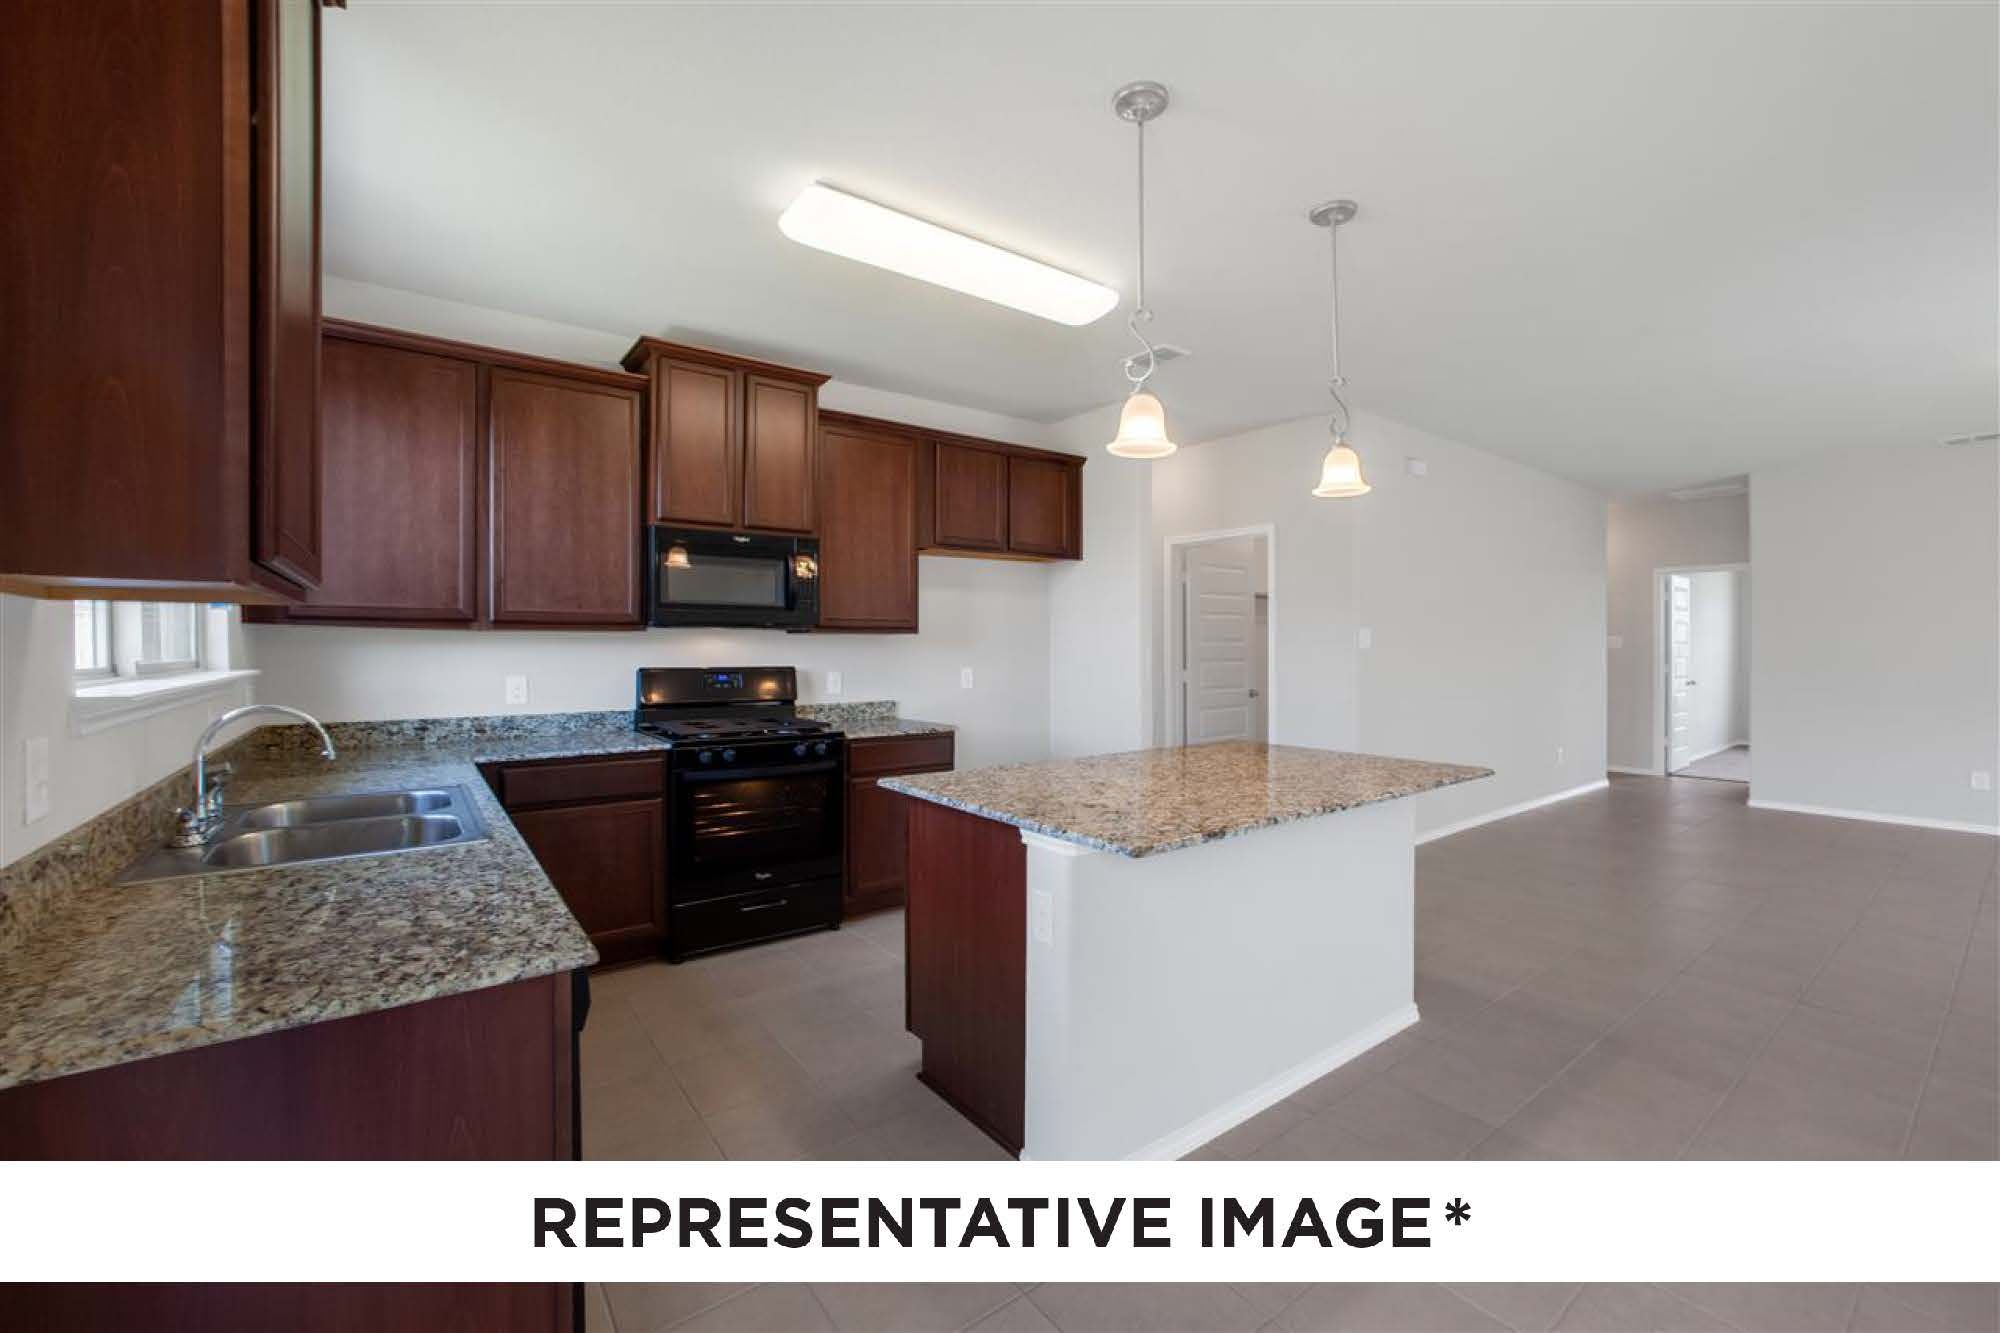 Kitchen featured in the Dogwood By HistoryMaker Homes    in Sherman-Denison, TX